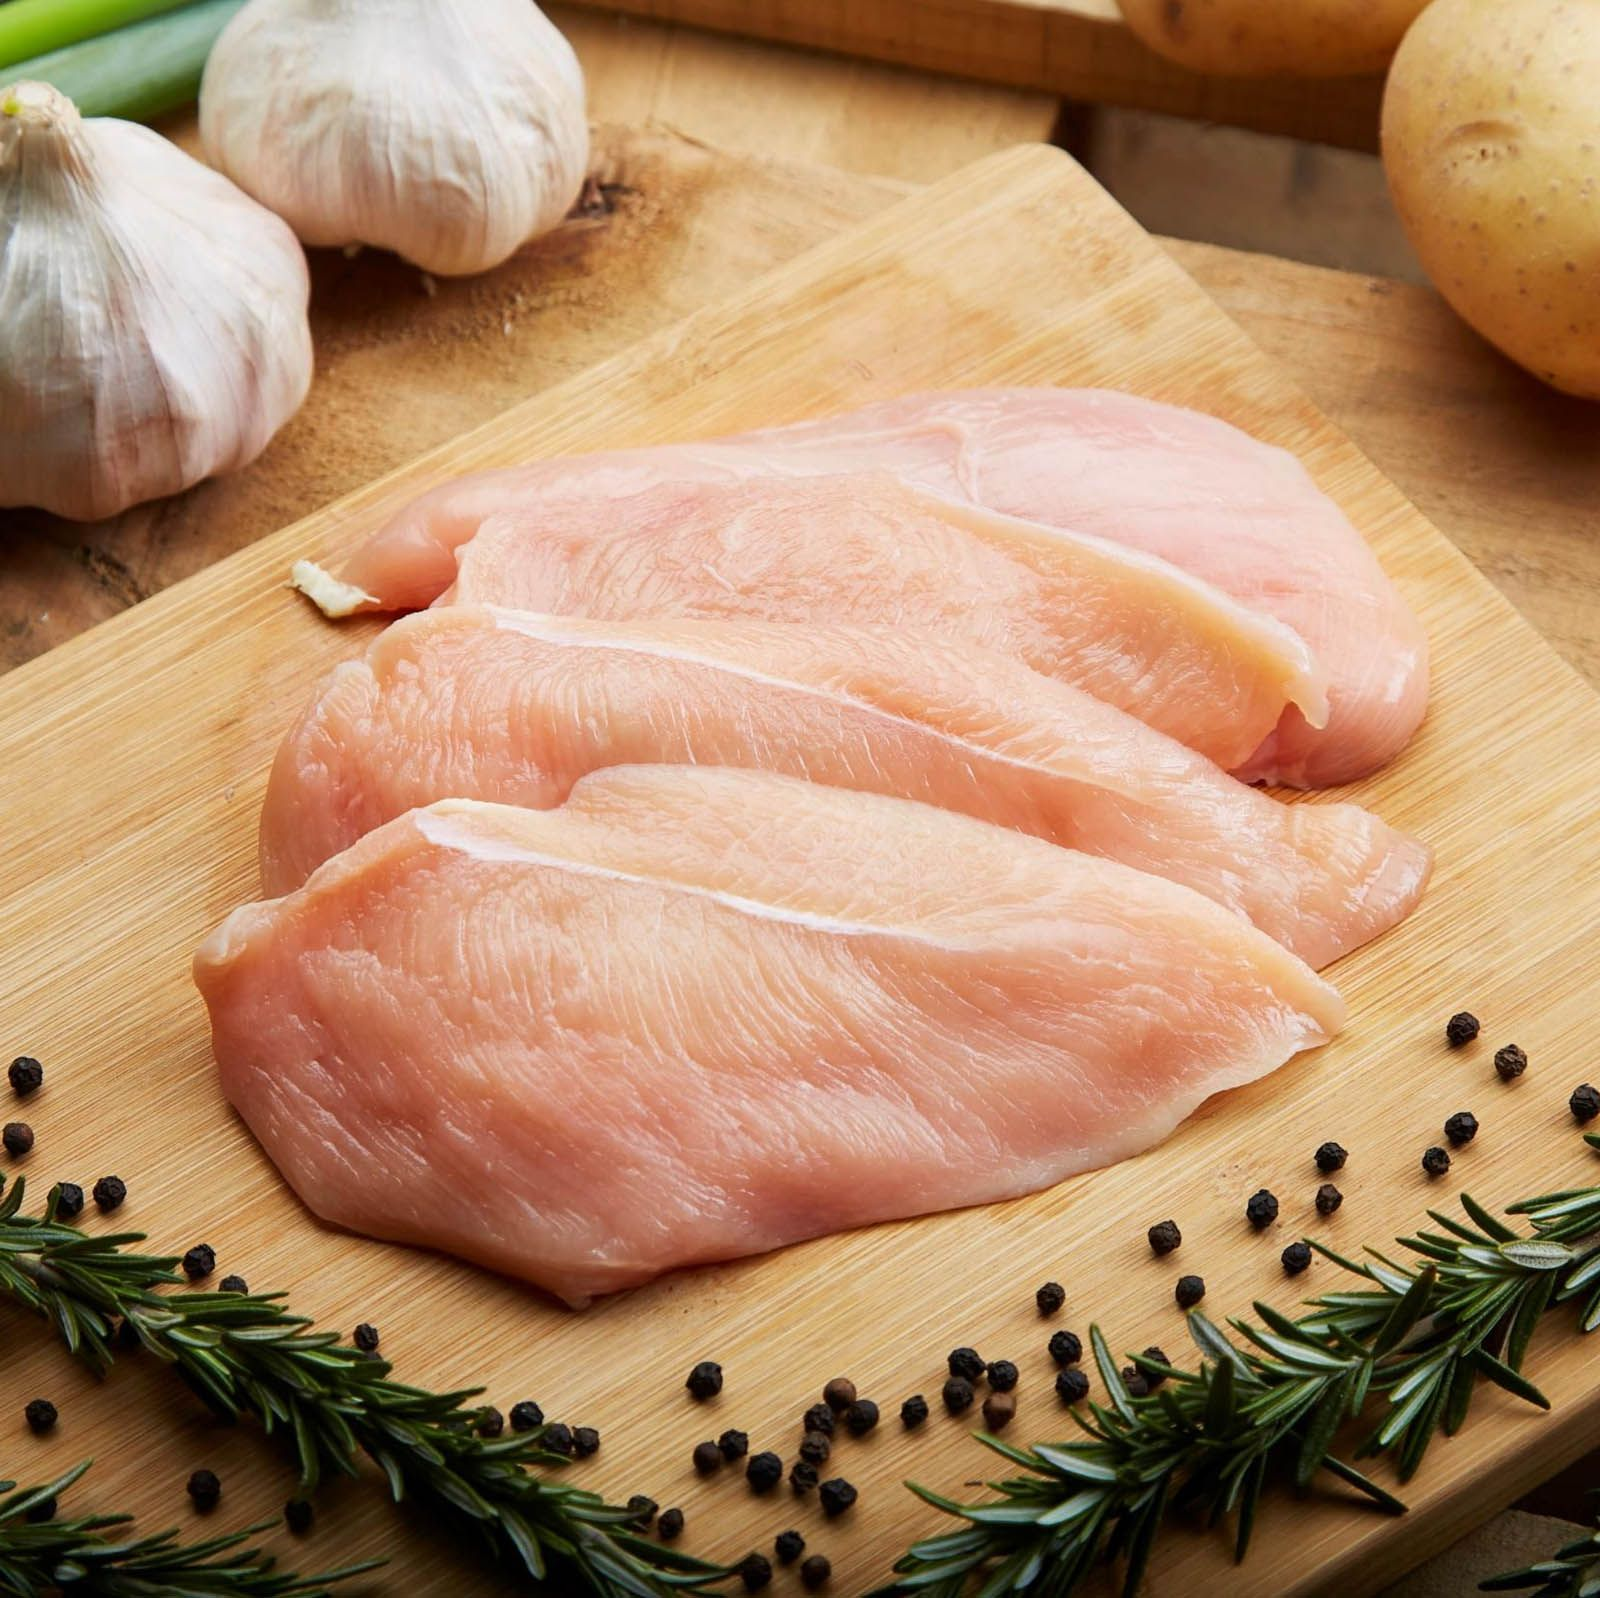 The Easiest Chicken Recipes to Cook During the Phase 2 (Heightened Alert)